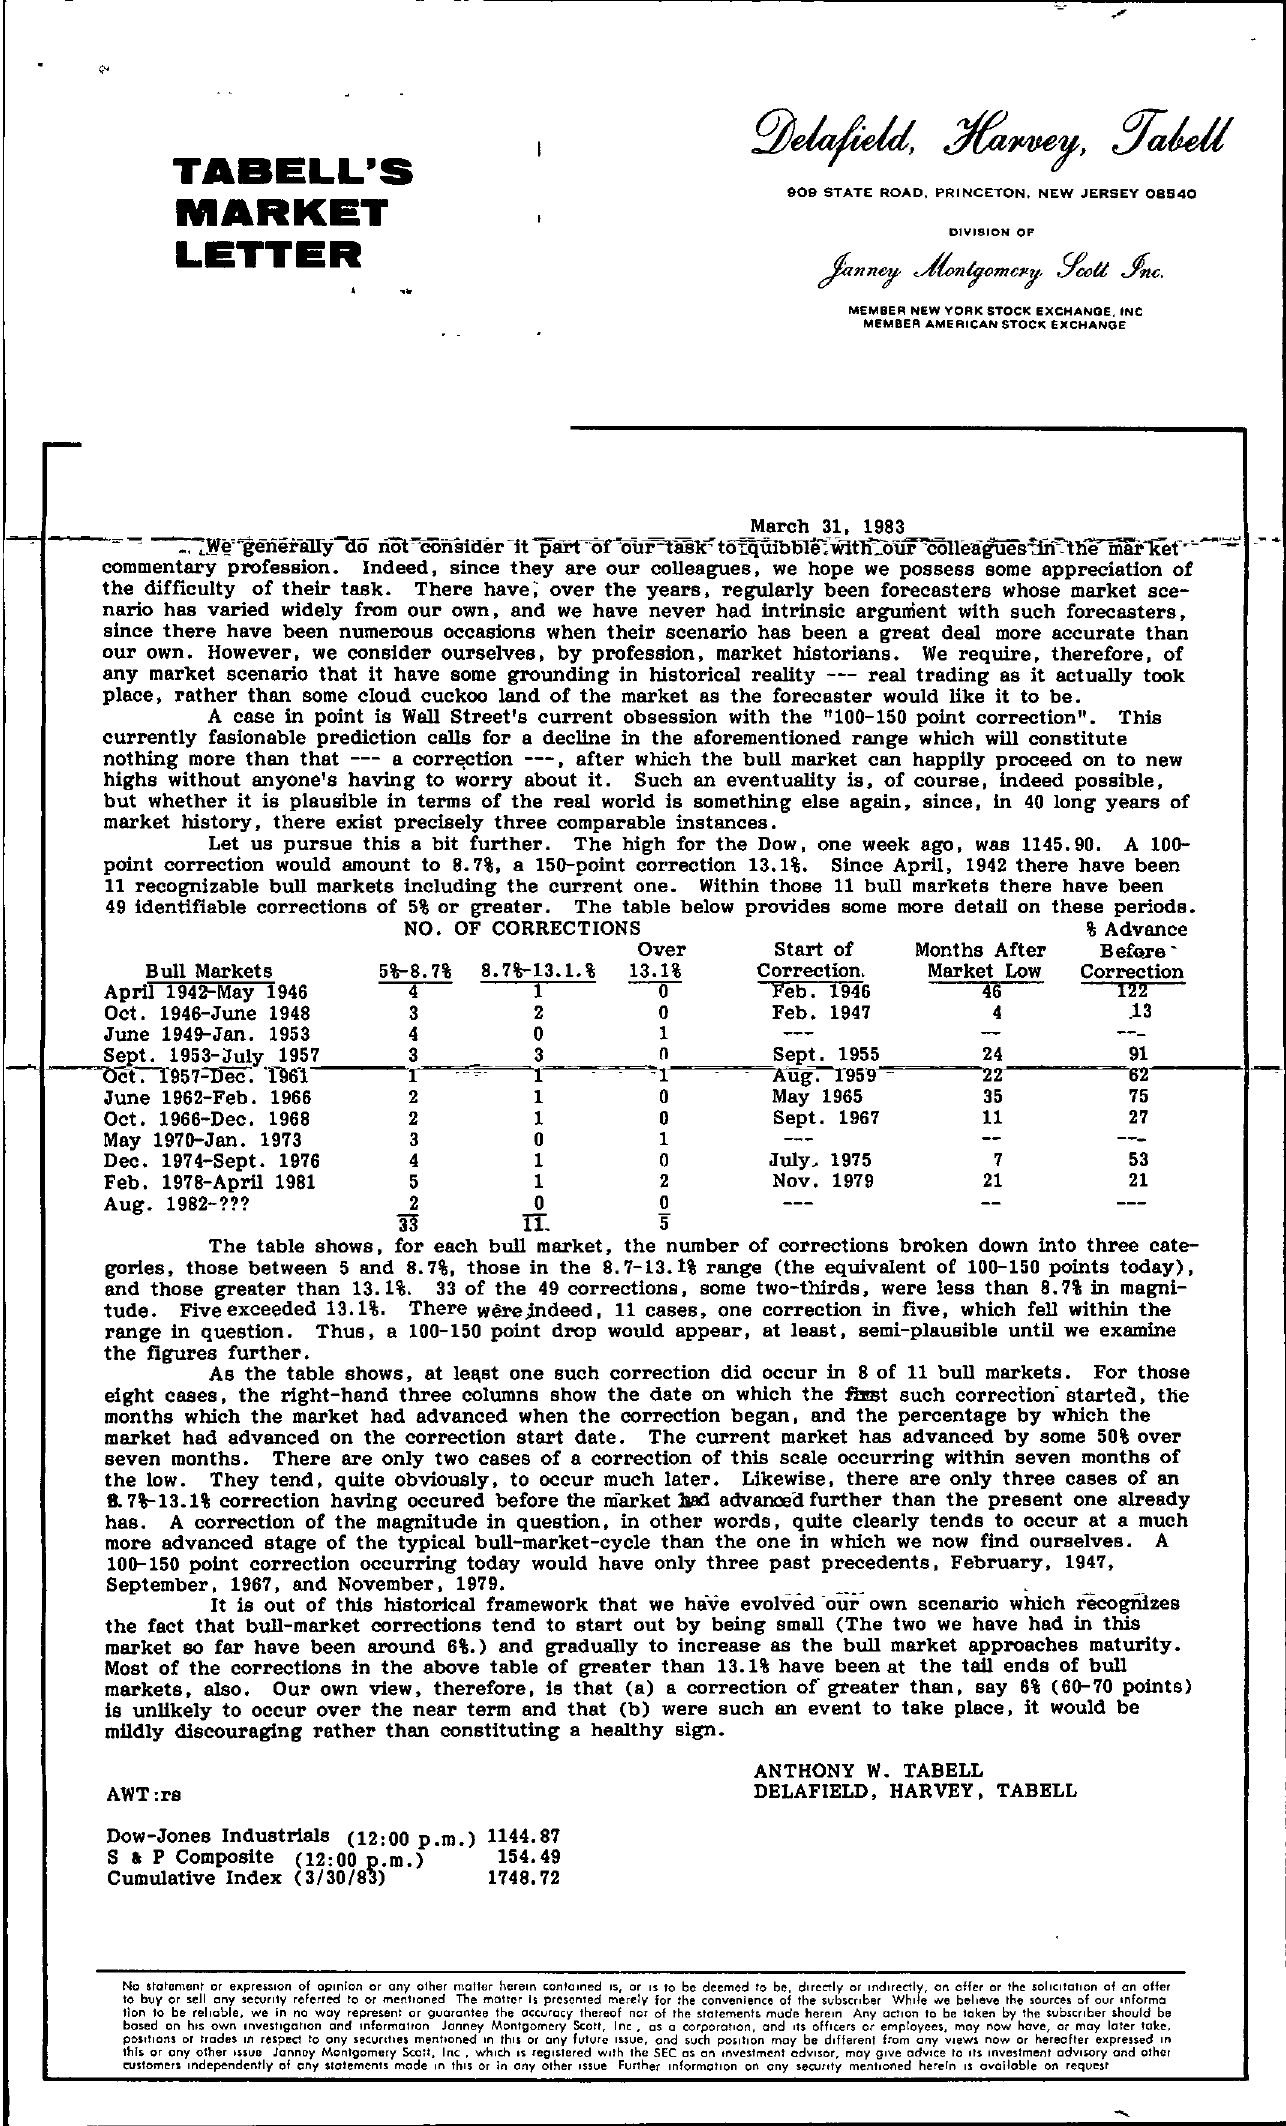 Tabell's Market Letter - March 31, 1983